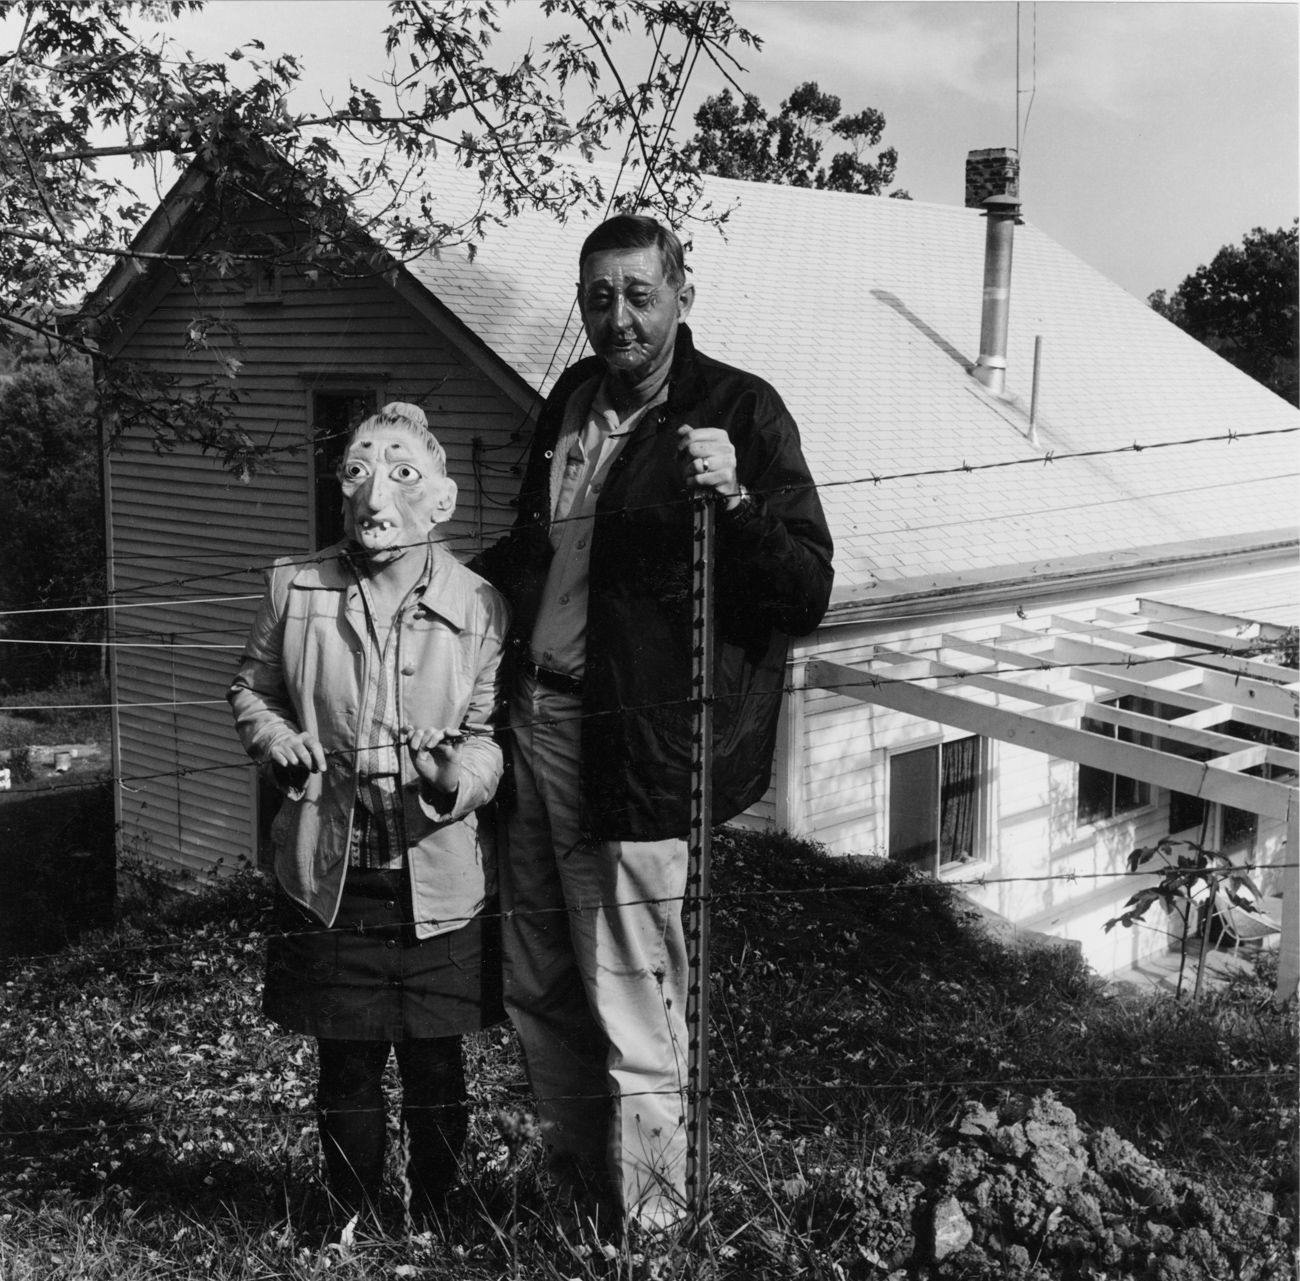 Lucybelle Crater and successful peanut farmer friend's boyhood chum from New Castle, KY, Lucybelle Crater, 1970-72